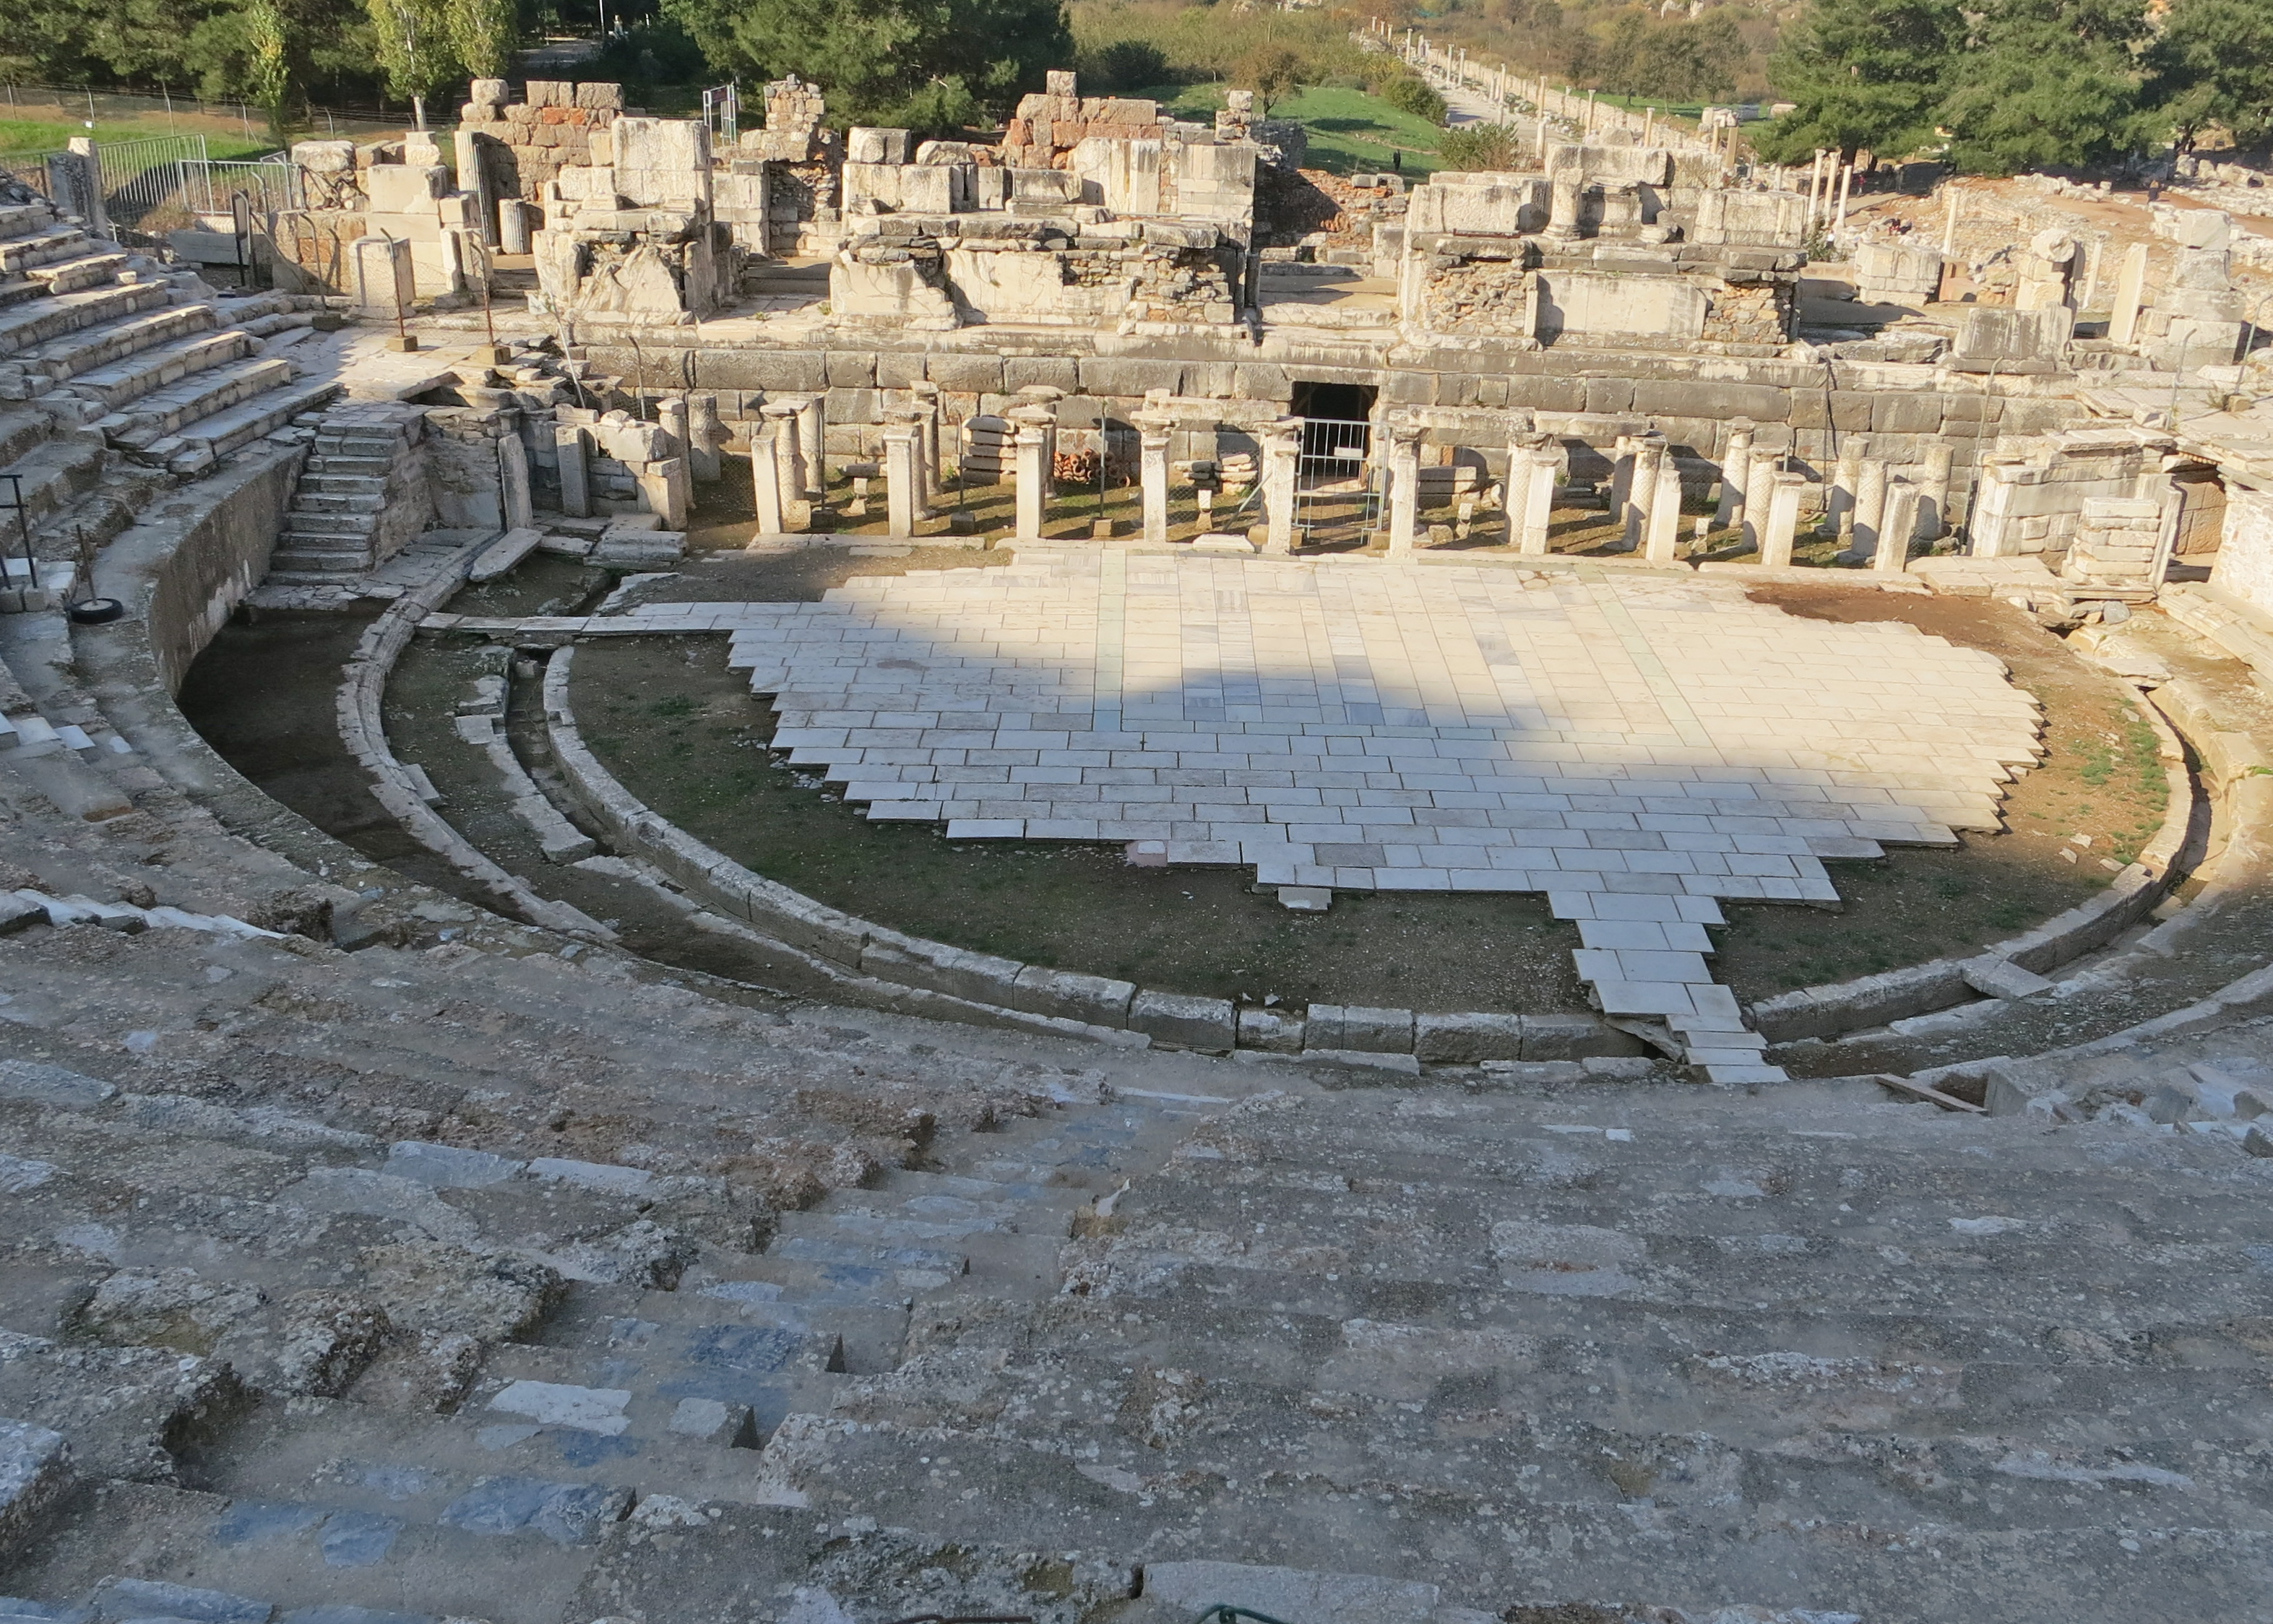 The Great Theater of Ephesus provided seating for 25,000 people. Acoustics are excellent. Modern performers have included Sting and Diana Ross.